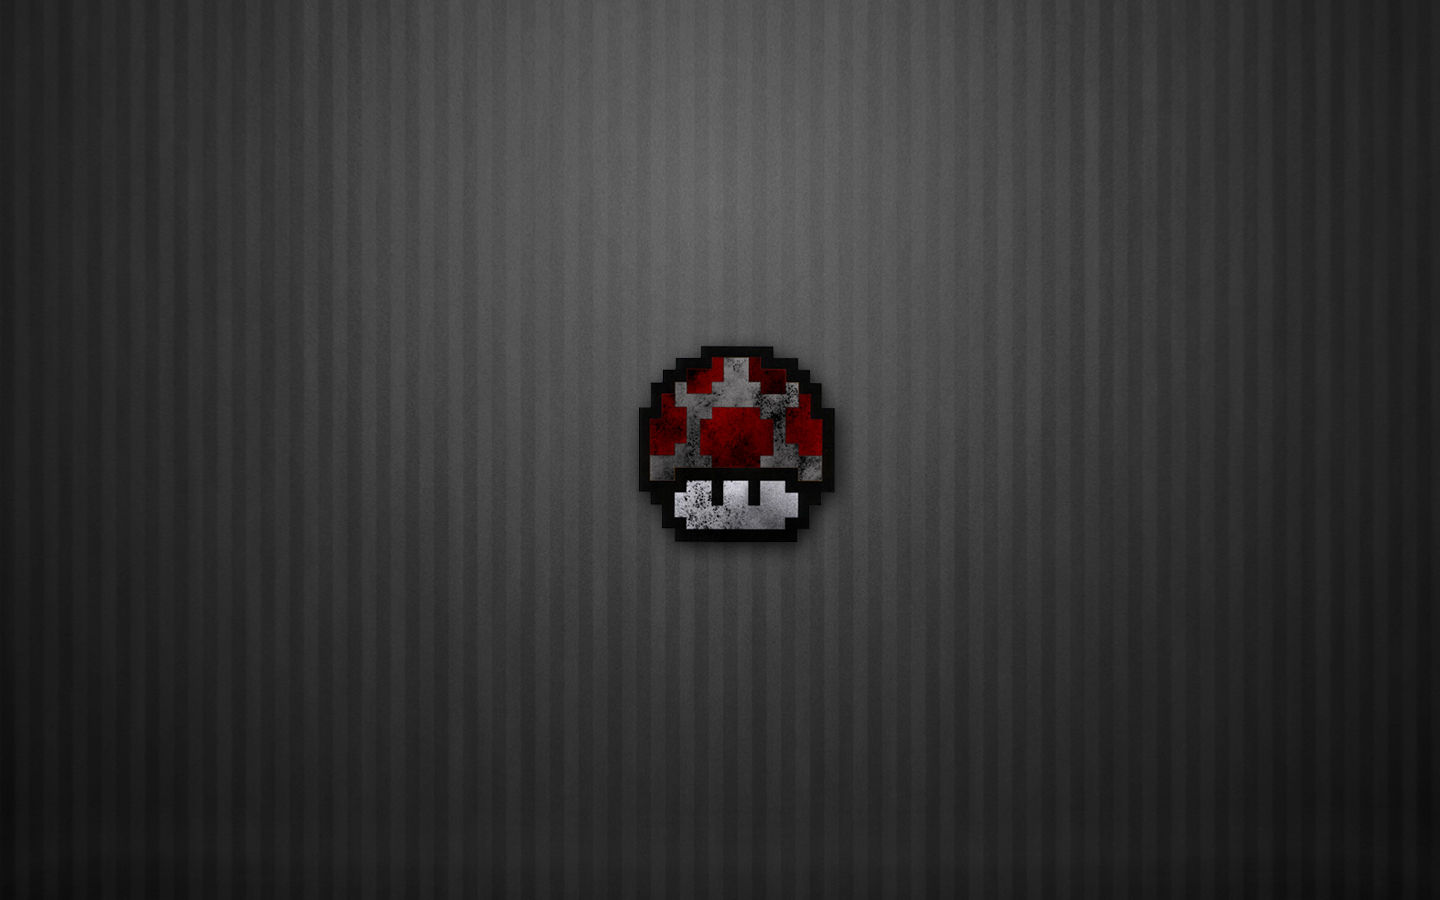 Wallpaper Hd Android 8 Bit 12